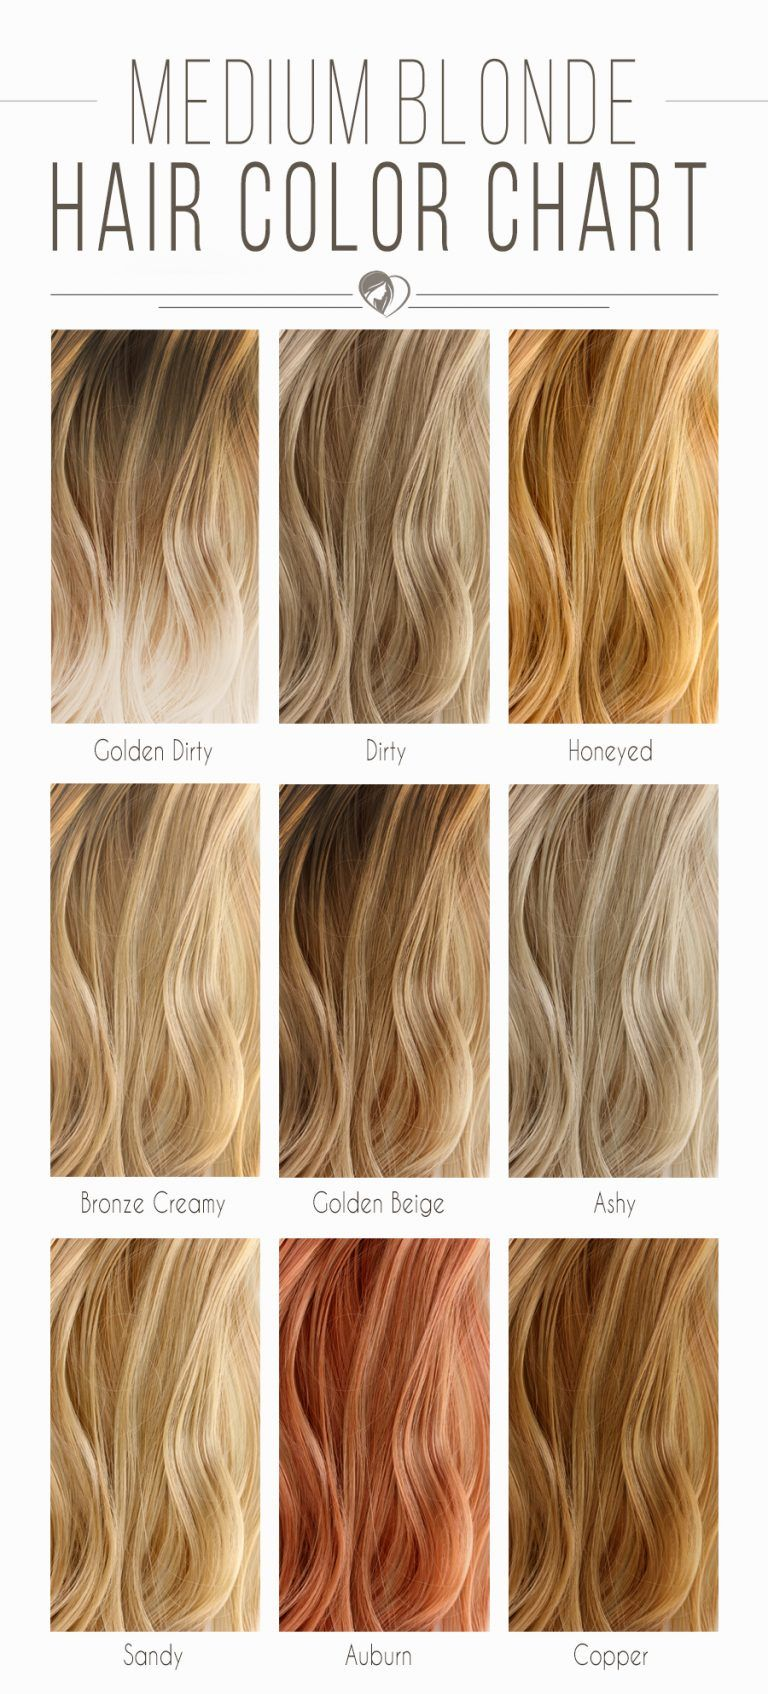 Blonde Hair Color Chart To Find The Right Shade For You Lovehairstyles Blonde Hair Color Chart Medium Blonde Hair Color Medium Blonde Hair